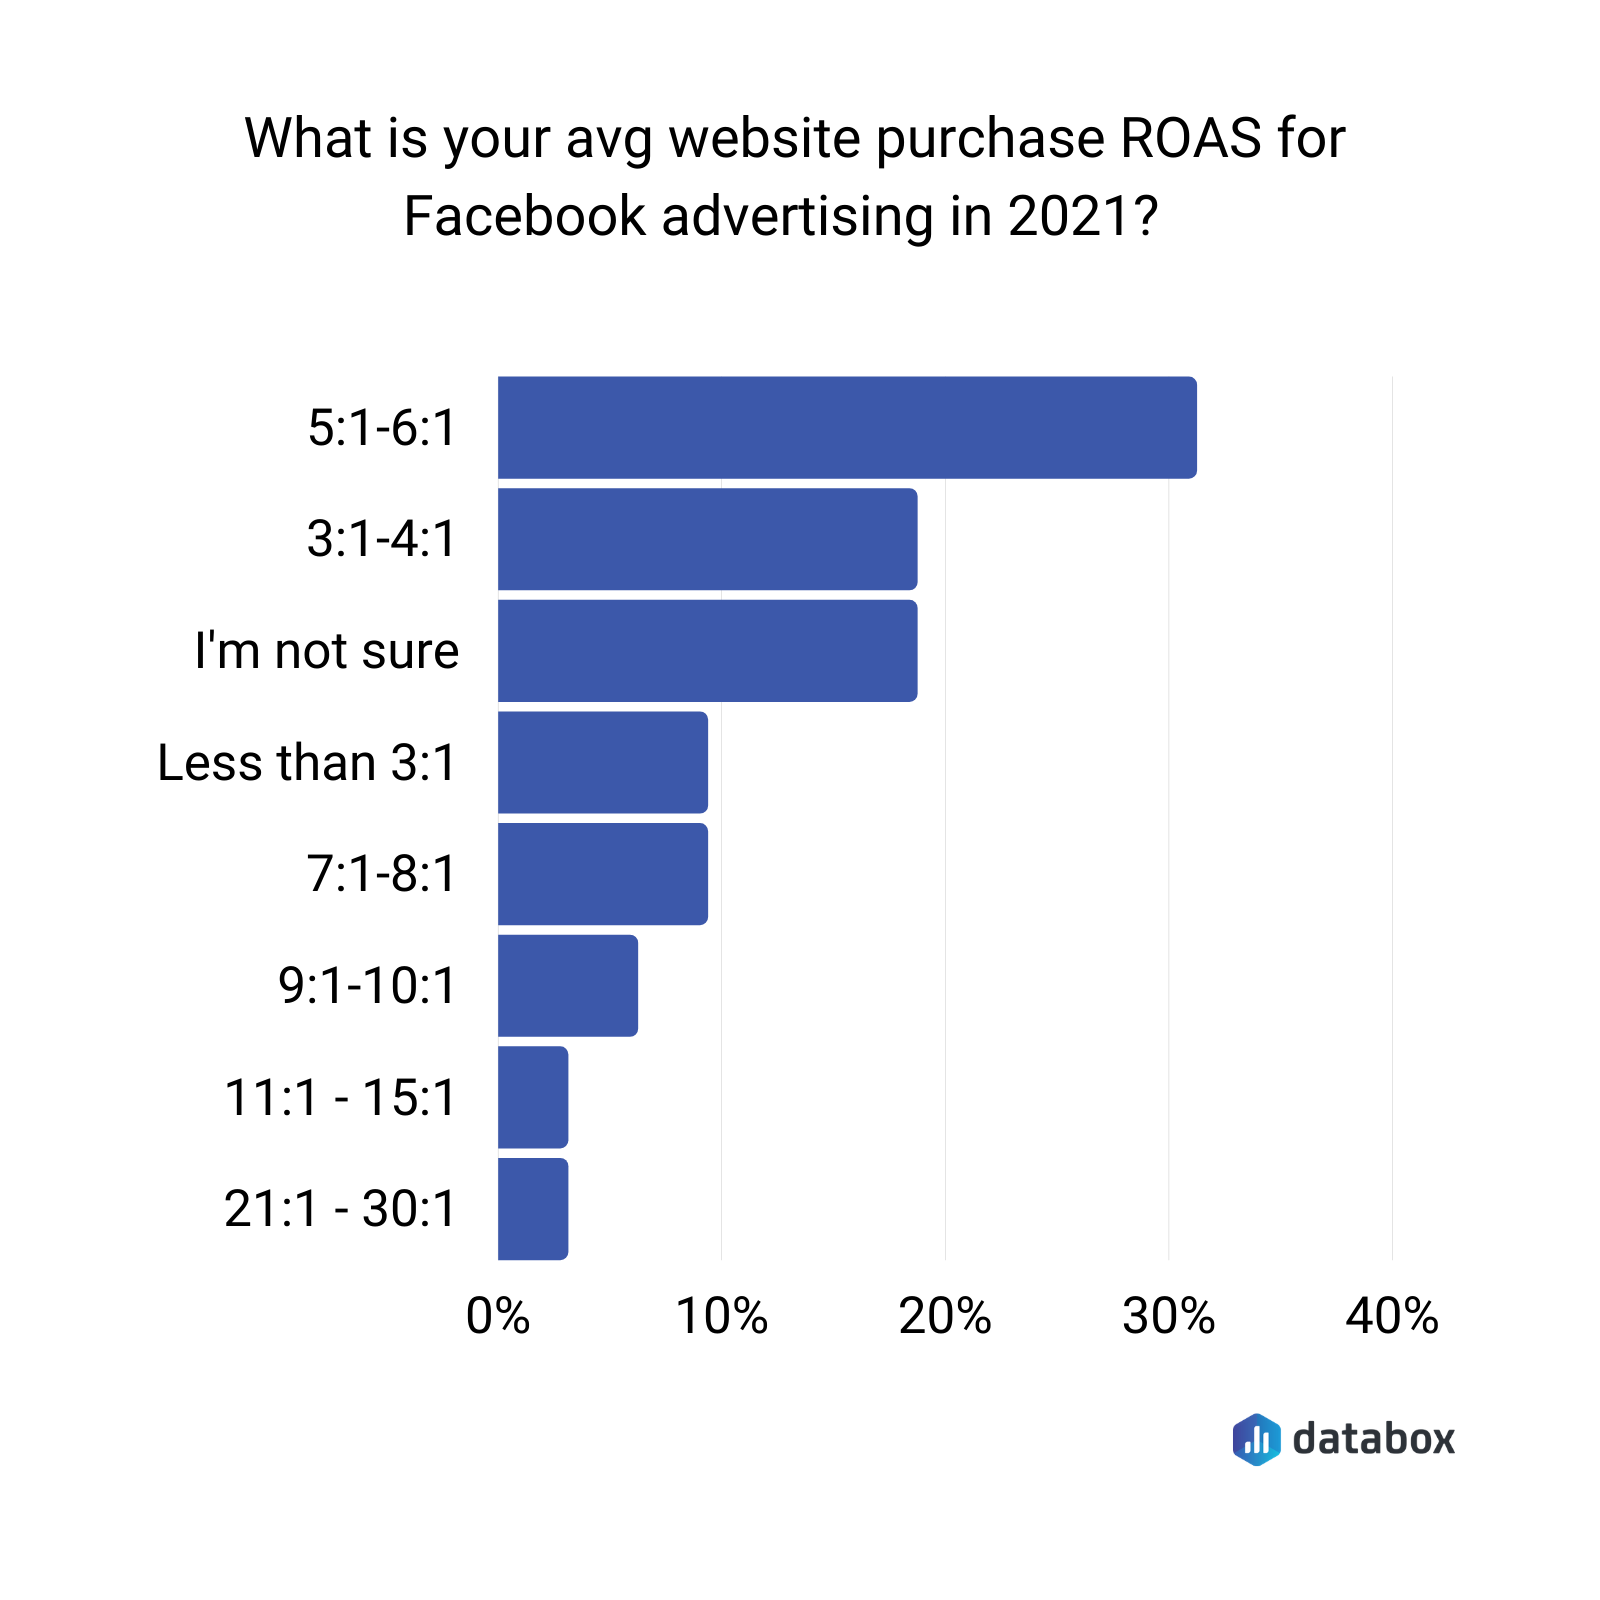 Average website purchase ROAS for Facebook advertising in 2021